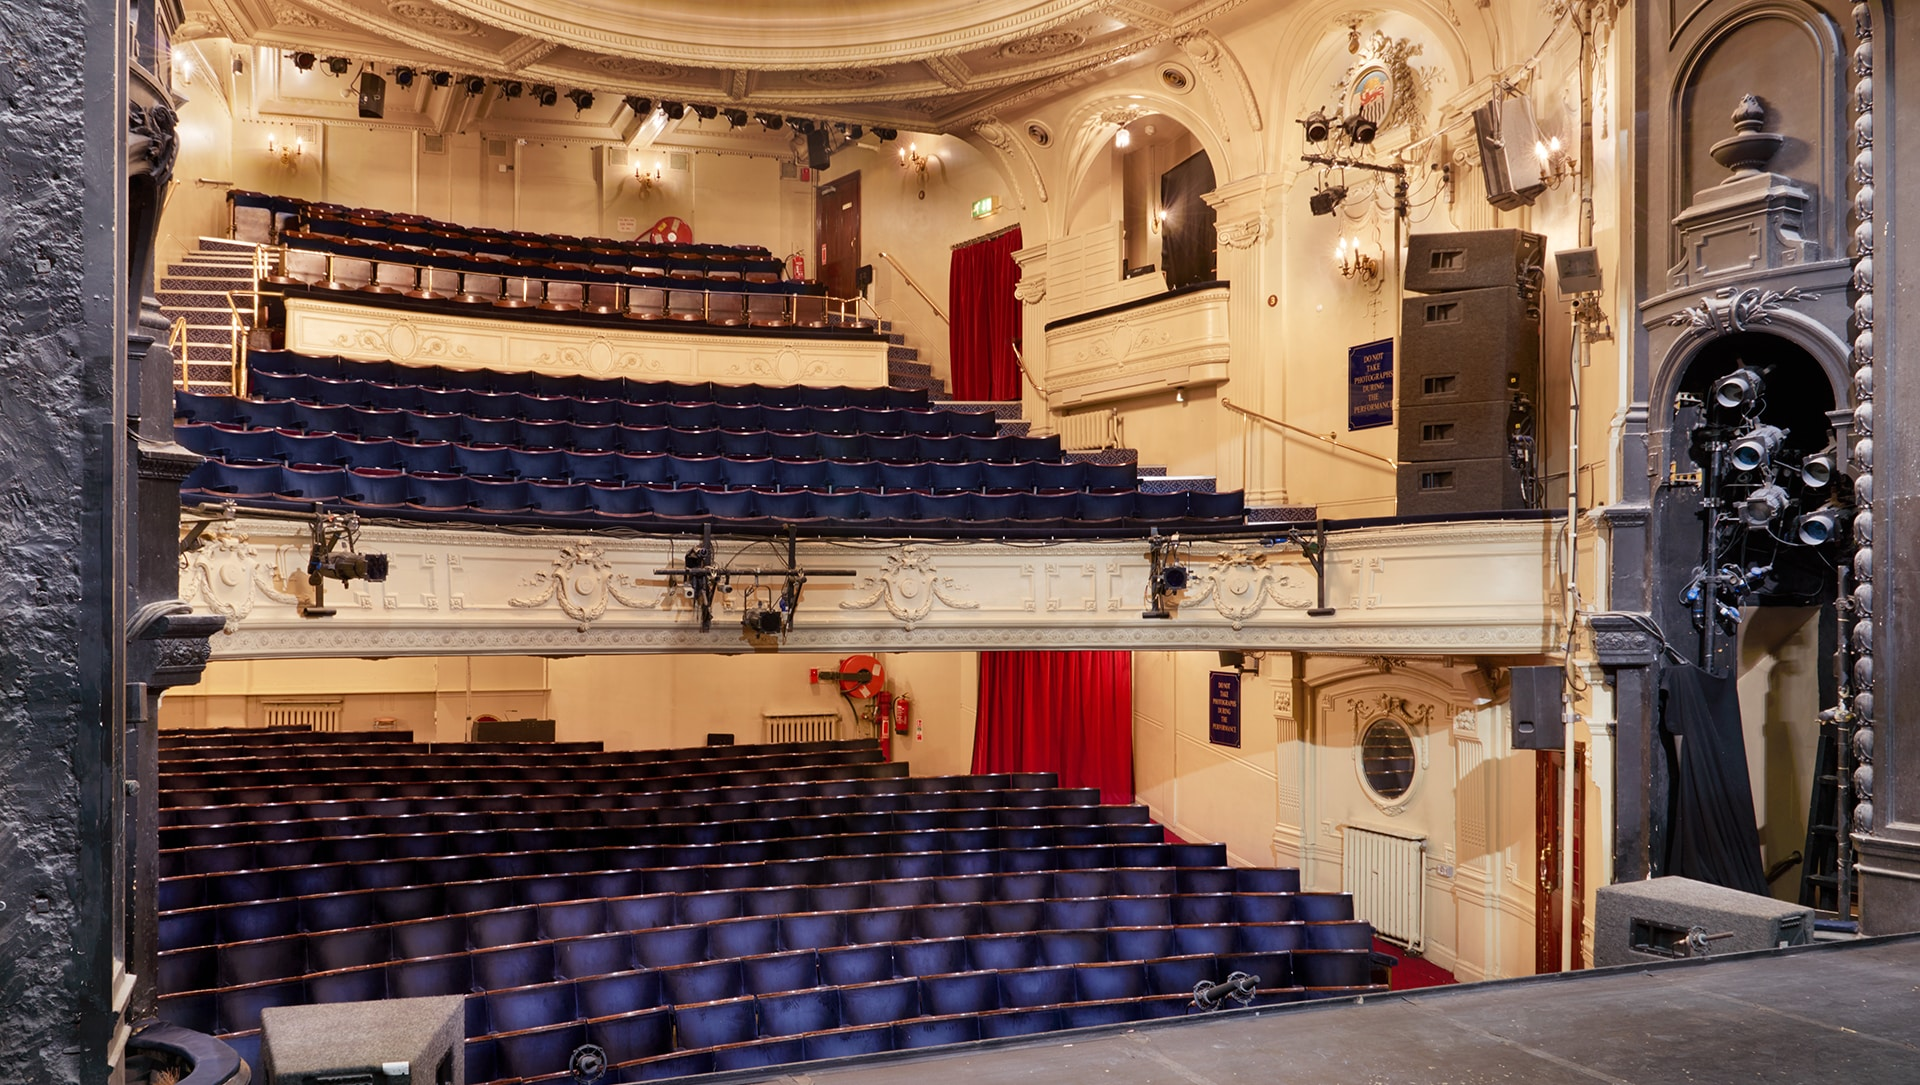 ambassadors-theatre-london-interior